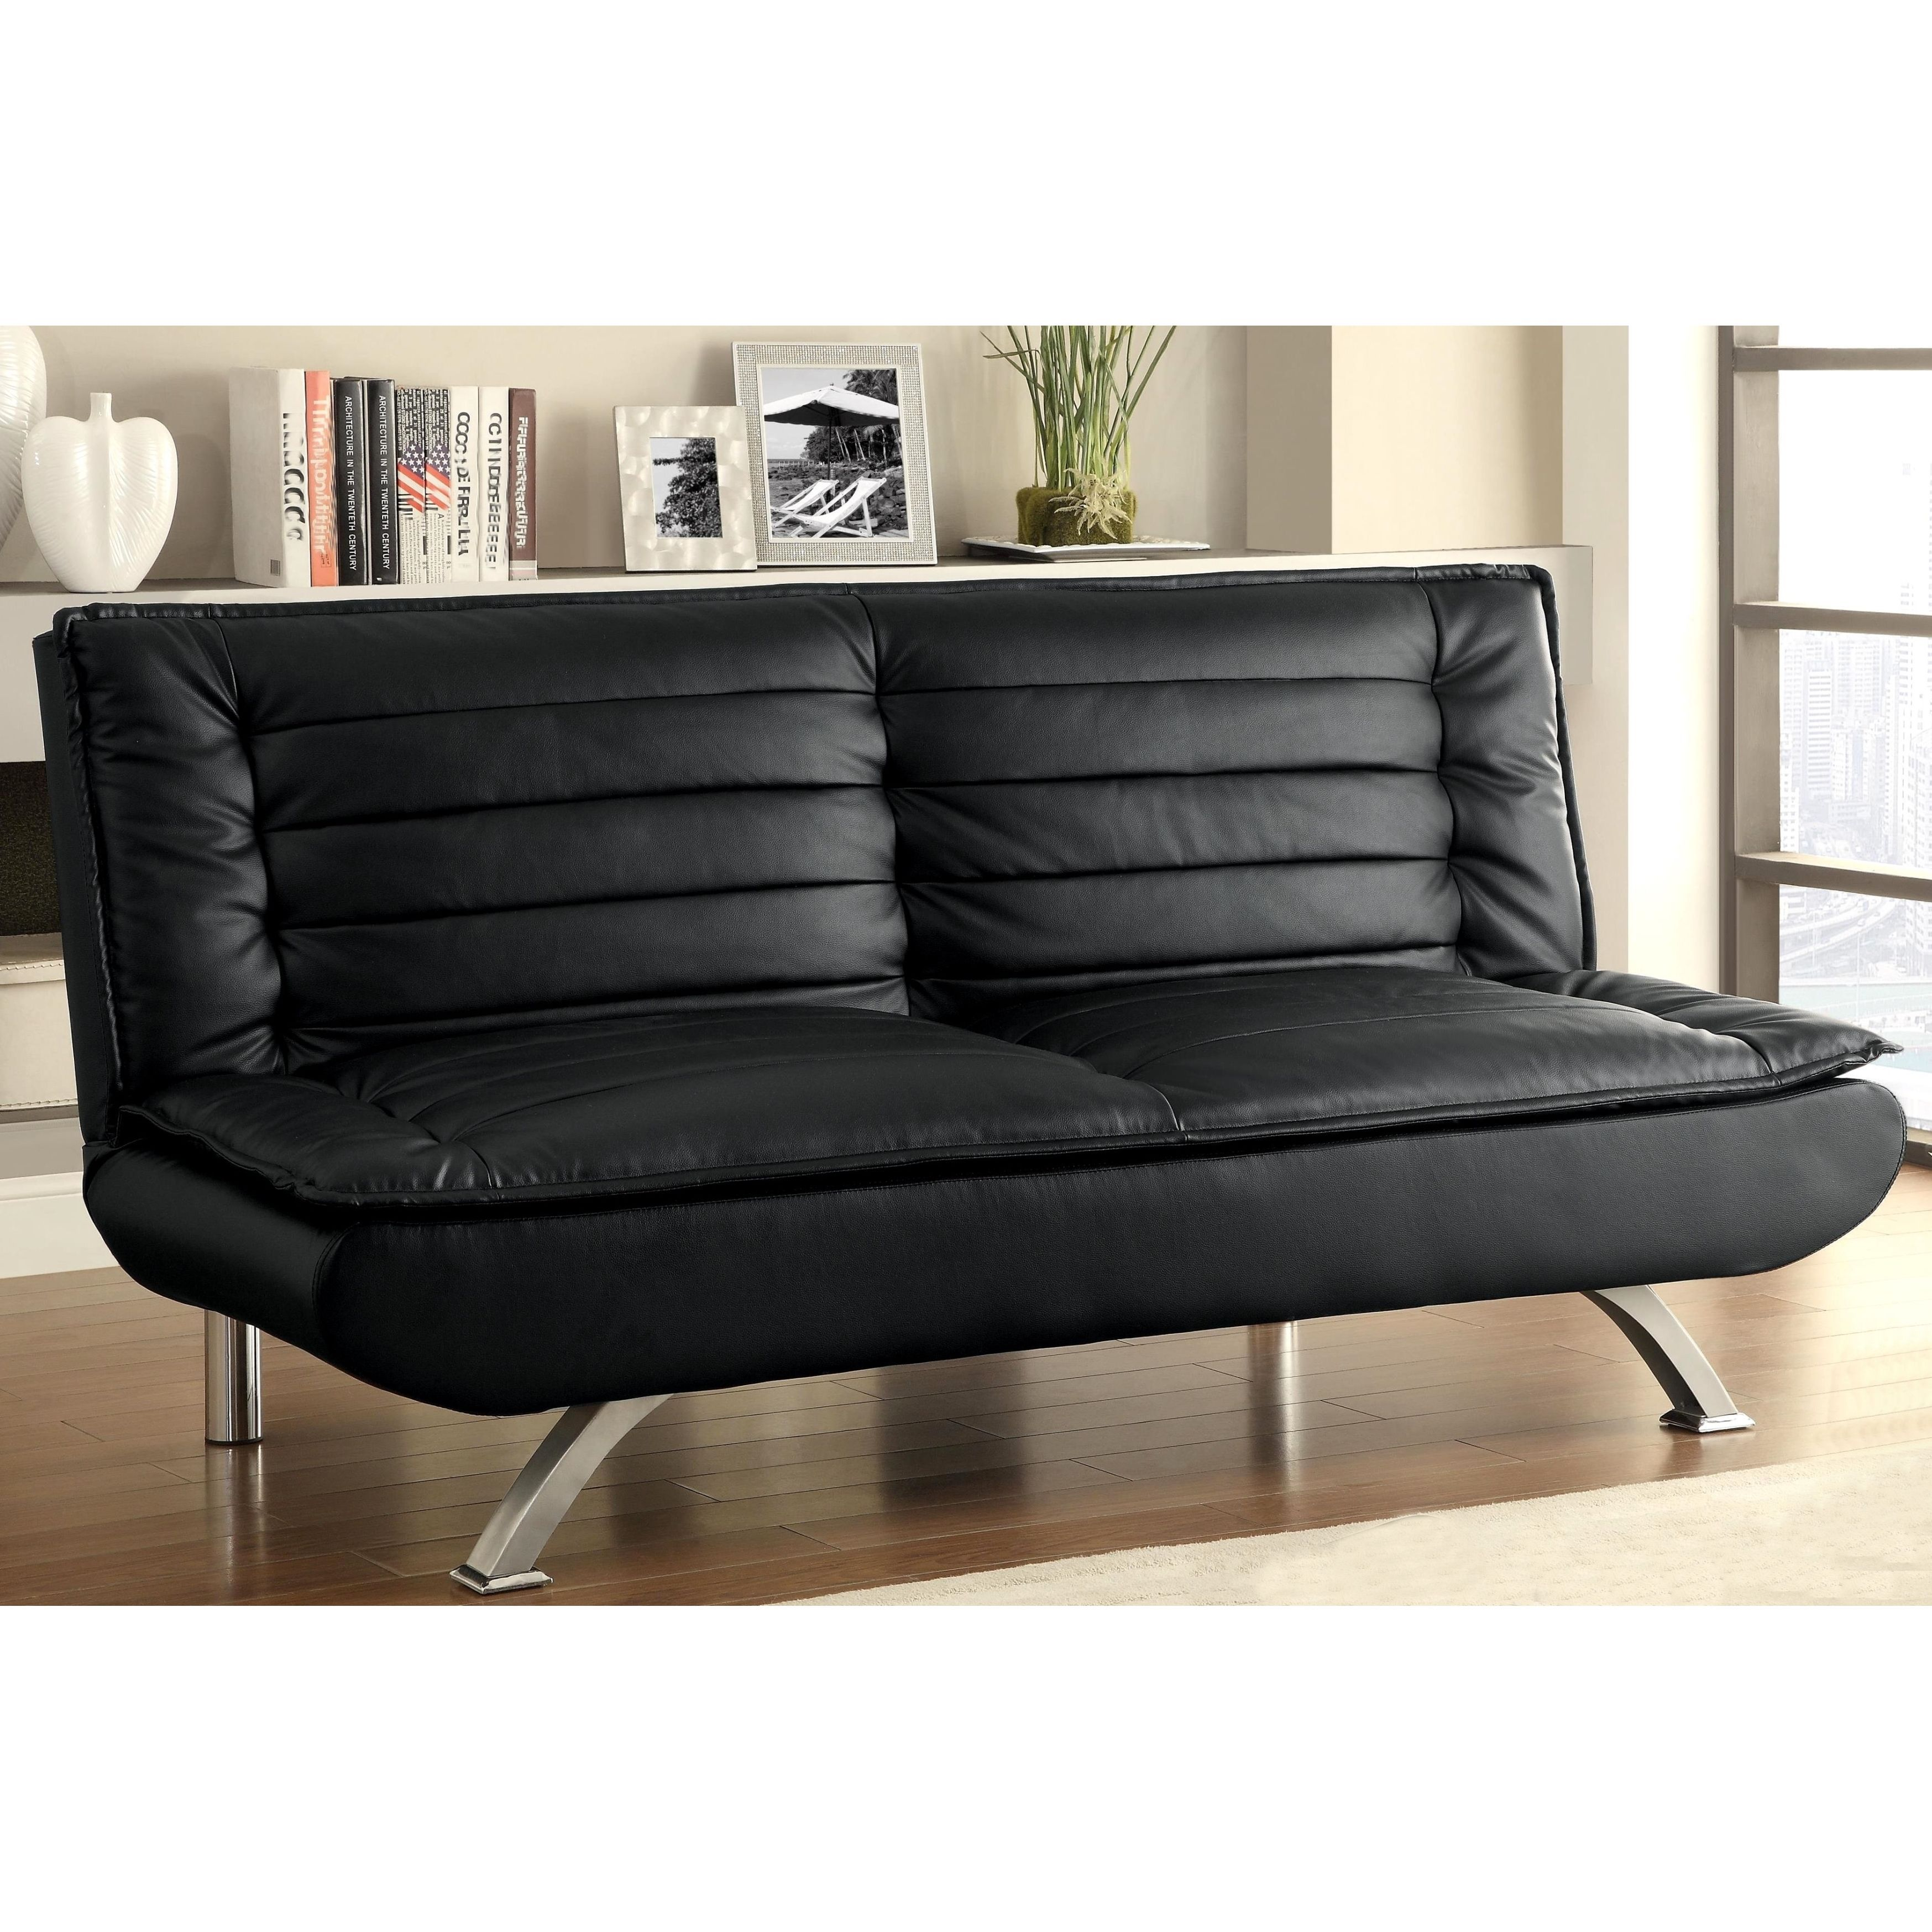 Premo Modern Decorative Quilted Pillow Top Sofa Bed